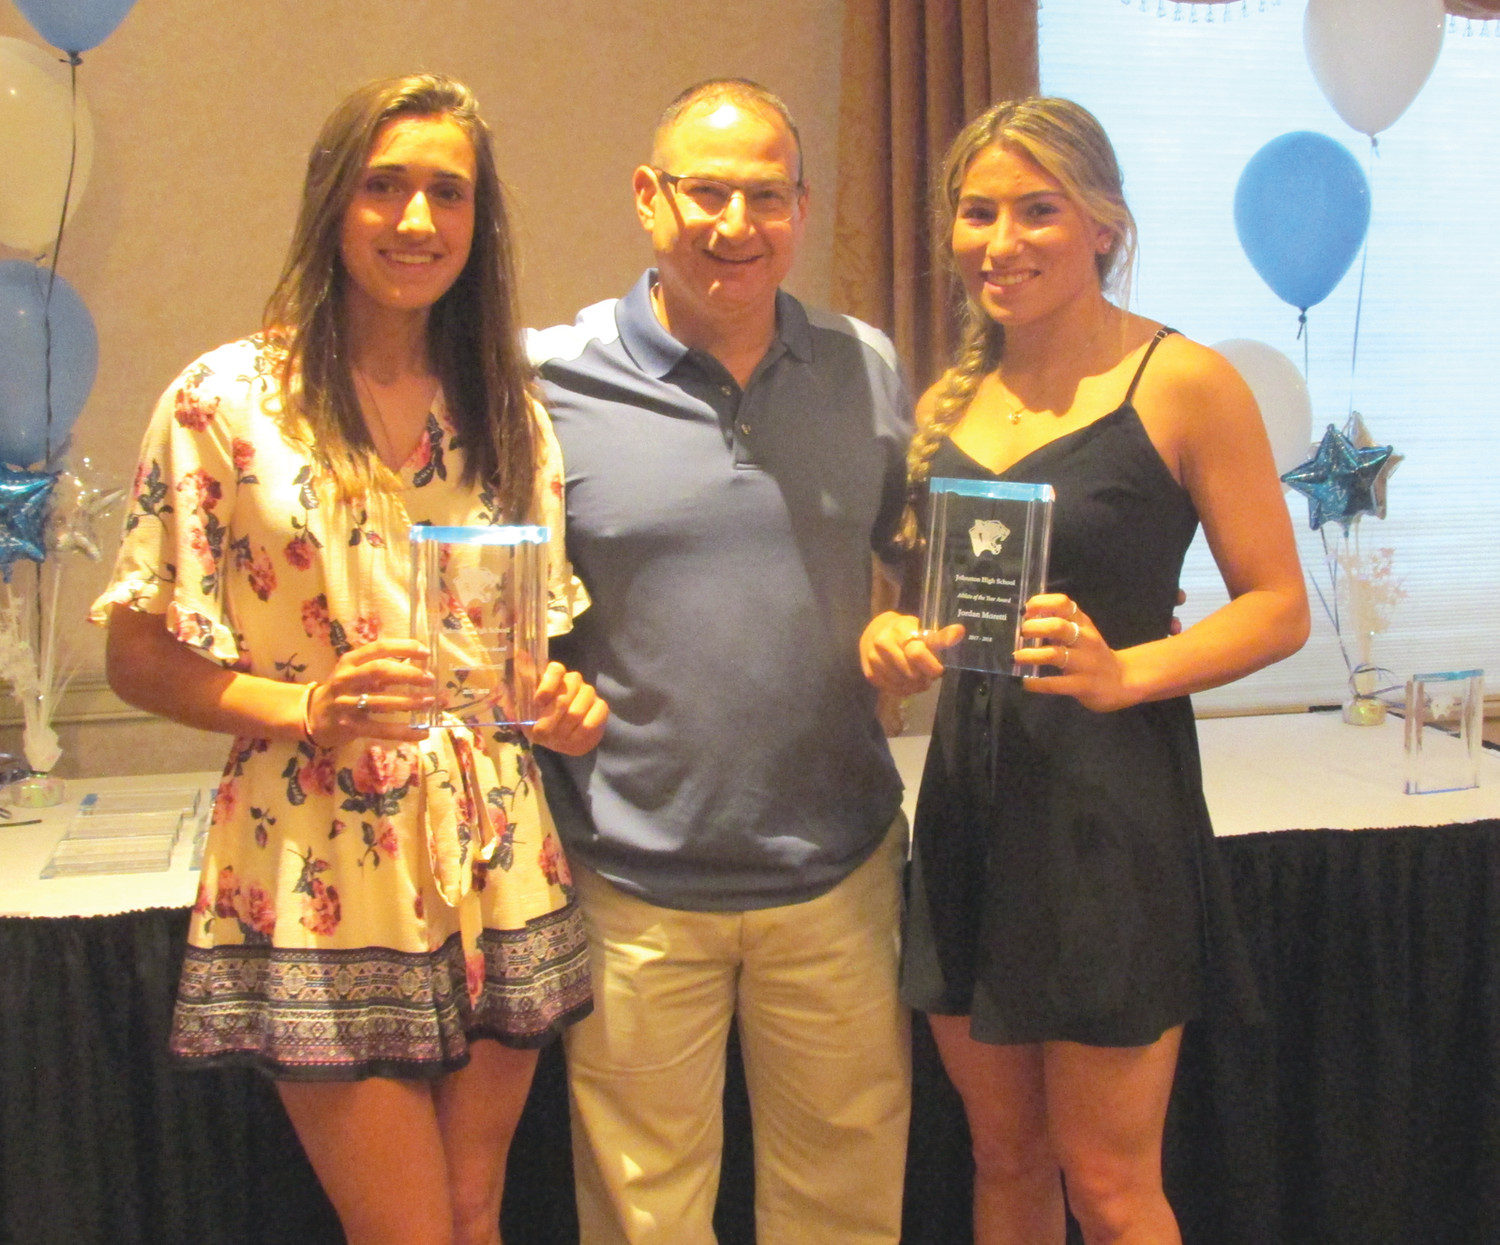 COACH'S CORNER: Chris Corsinetti, the highly-successful head girls' basketball coach at JHS, is all smiles after presenting standouts Lauren Civetti (left) and Jordan Moretti with the prestigious Co-Female Athletes of the Year Award at Monday night's special senior sendoff party. (Sun Rise photo by Pete Fontaine)